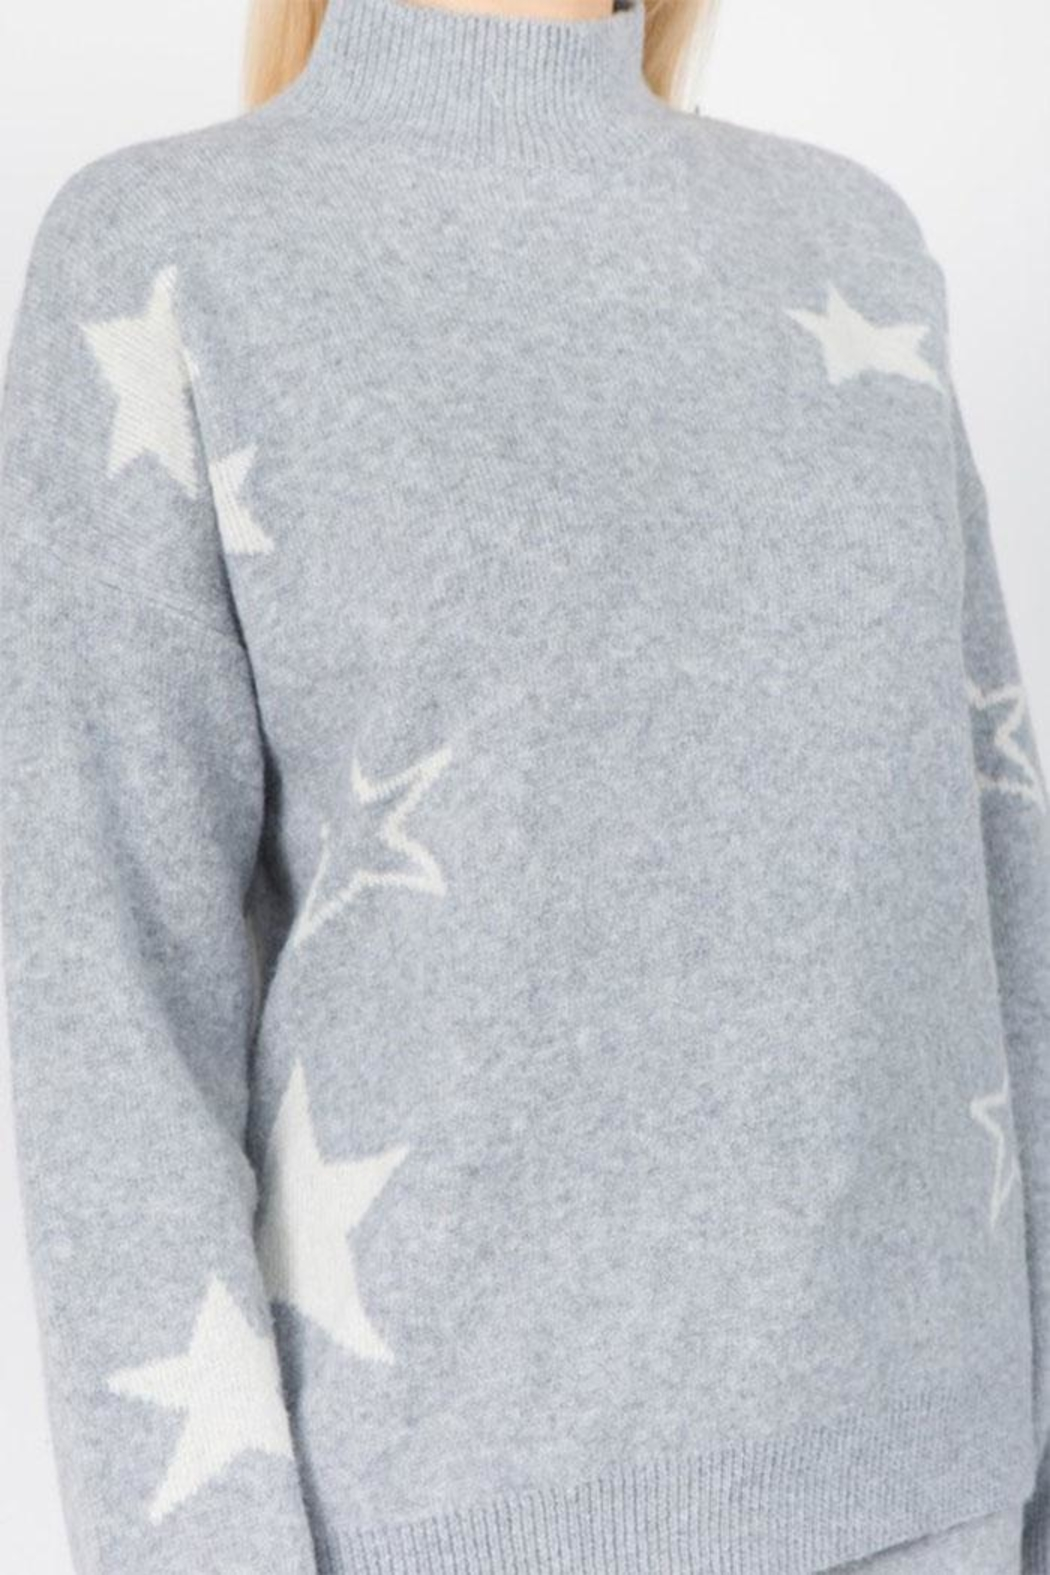 Dreamers Fuzzy Star Sweater - Front Full Image